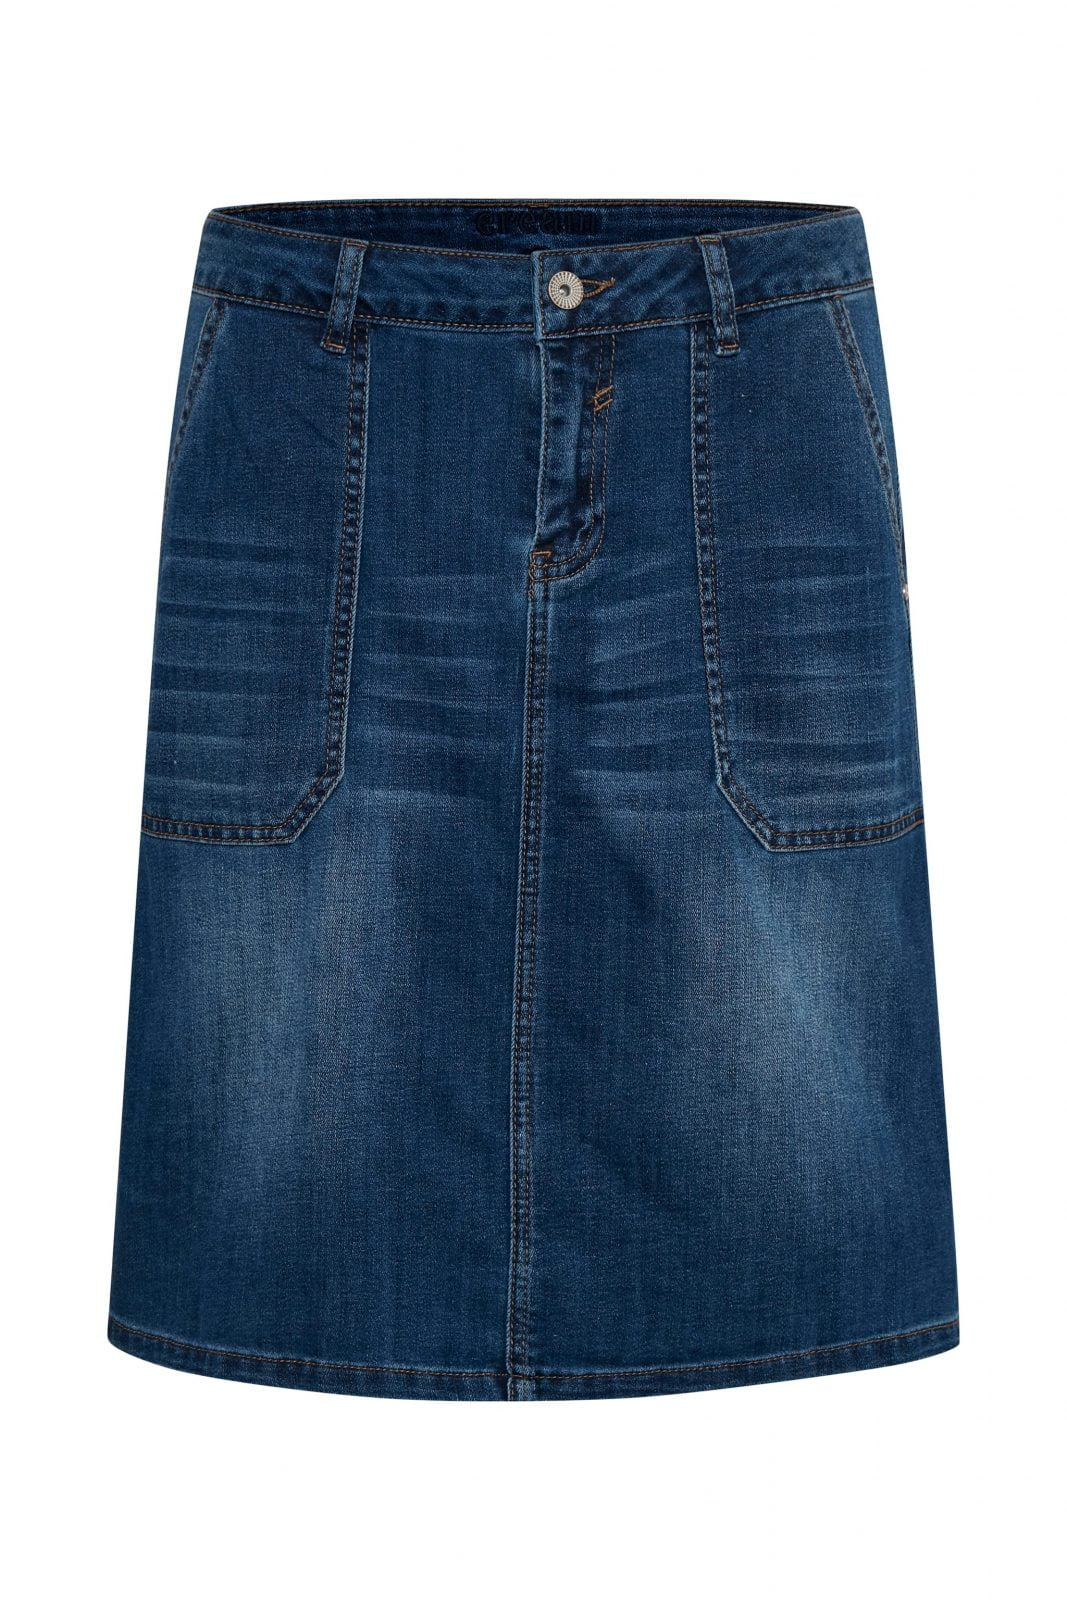 Image of   Diwa Denim Skirt